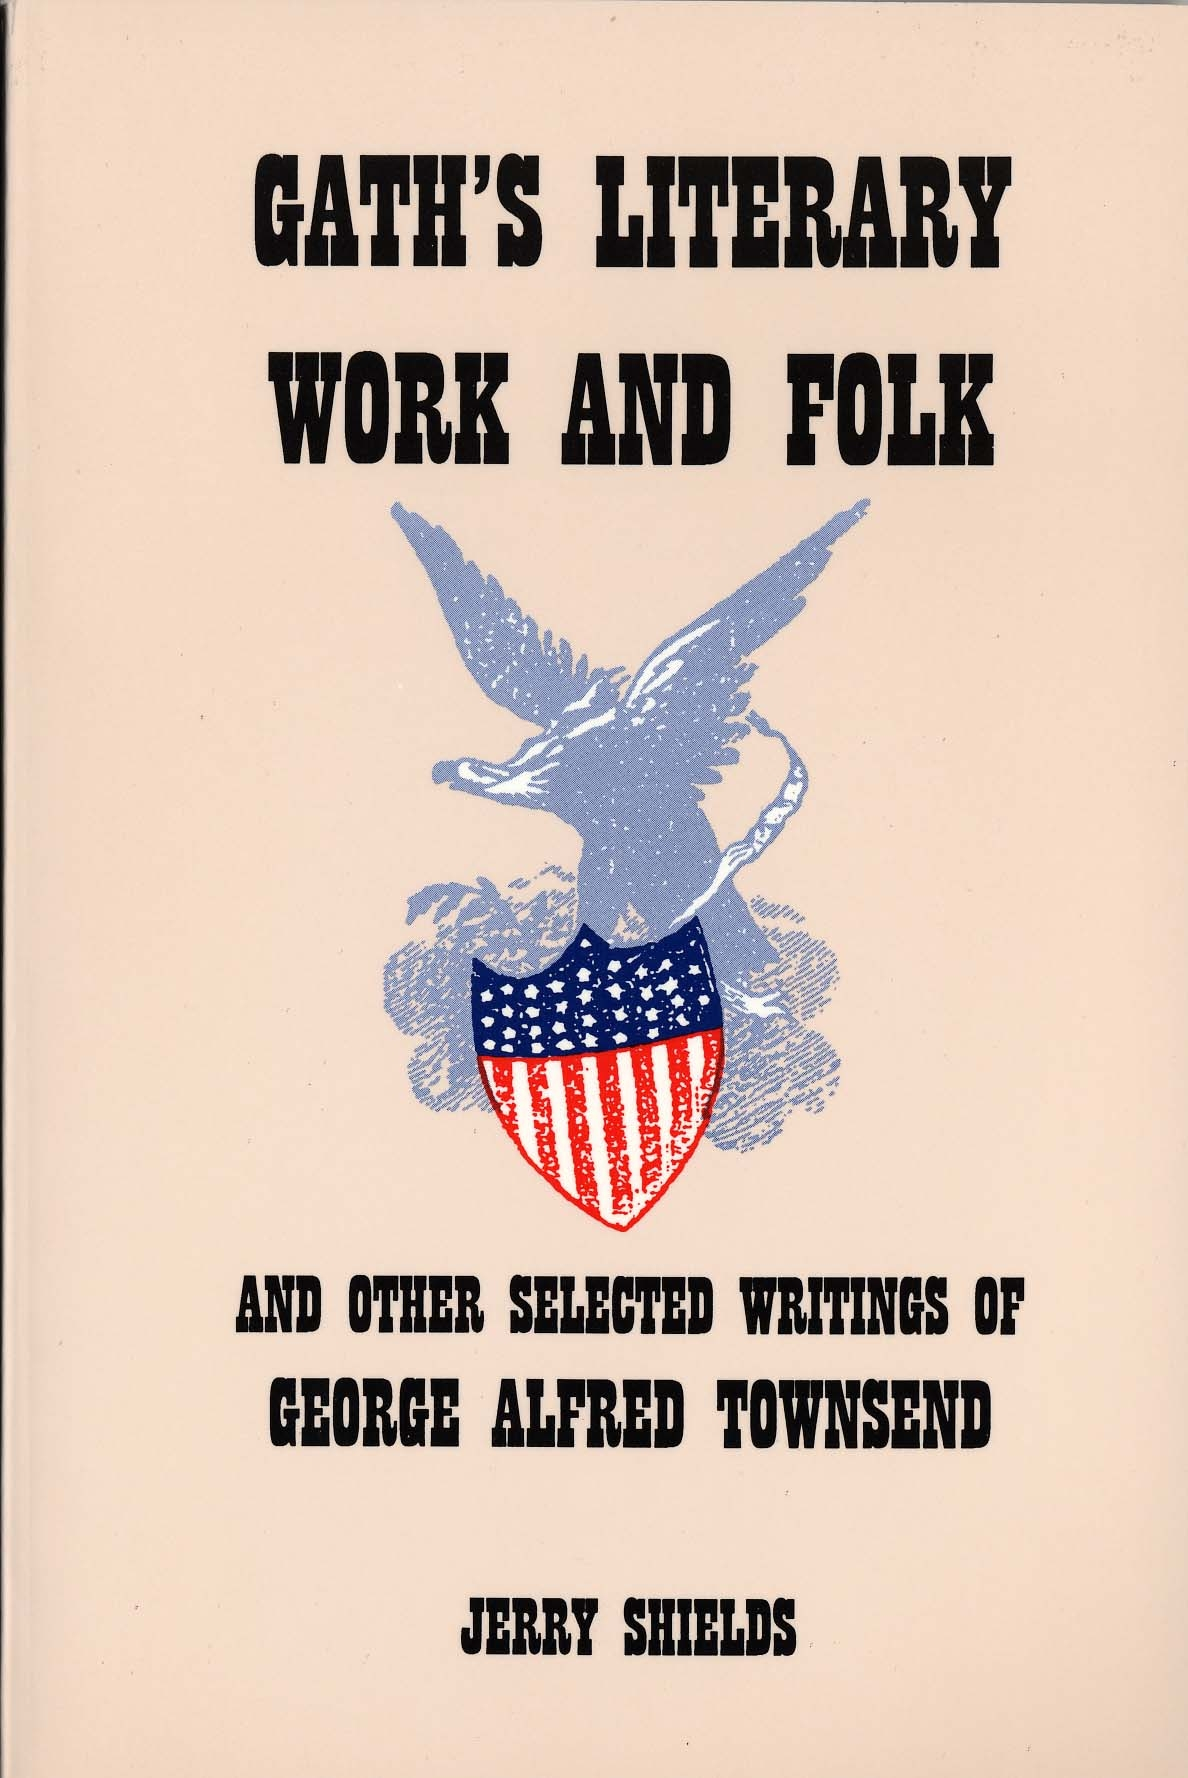 GATH's Literary Work and Folk and Other Selected Writings of George Alfred Townsend, by Jerry Shields, 1996, 378 pp. Prices reflect the cost of the book PLUS S&H fee of $5.00.